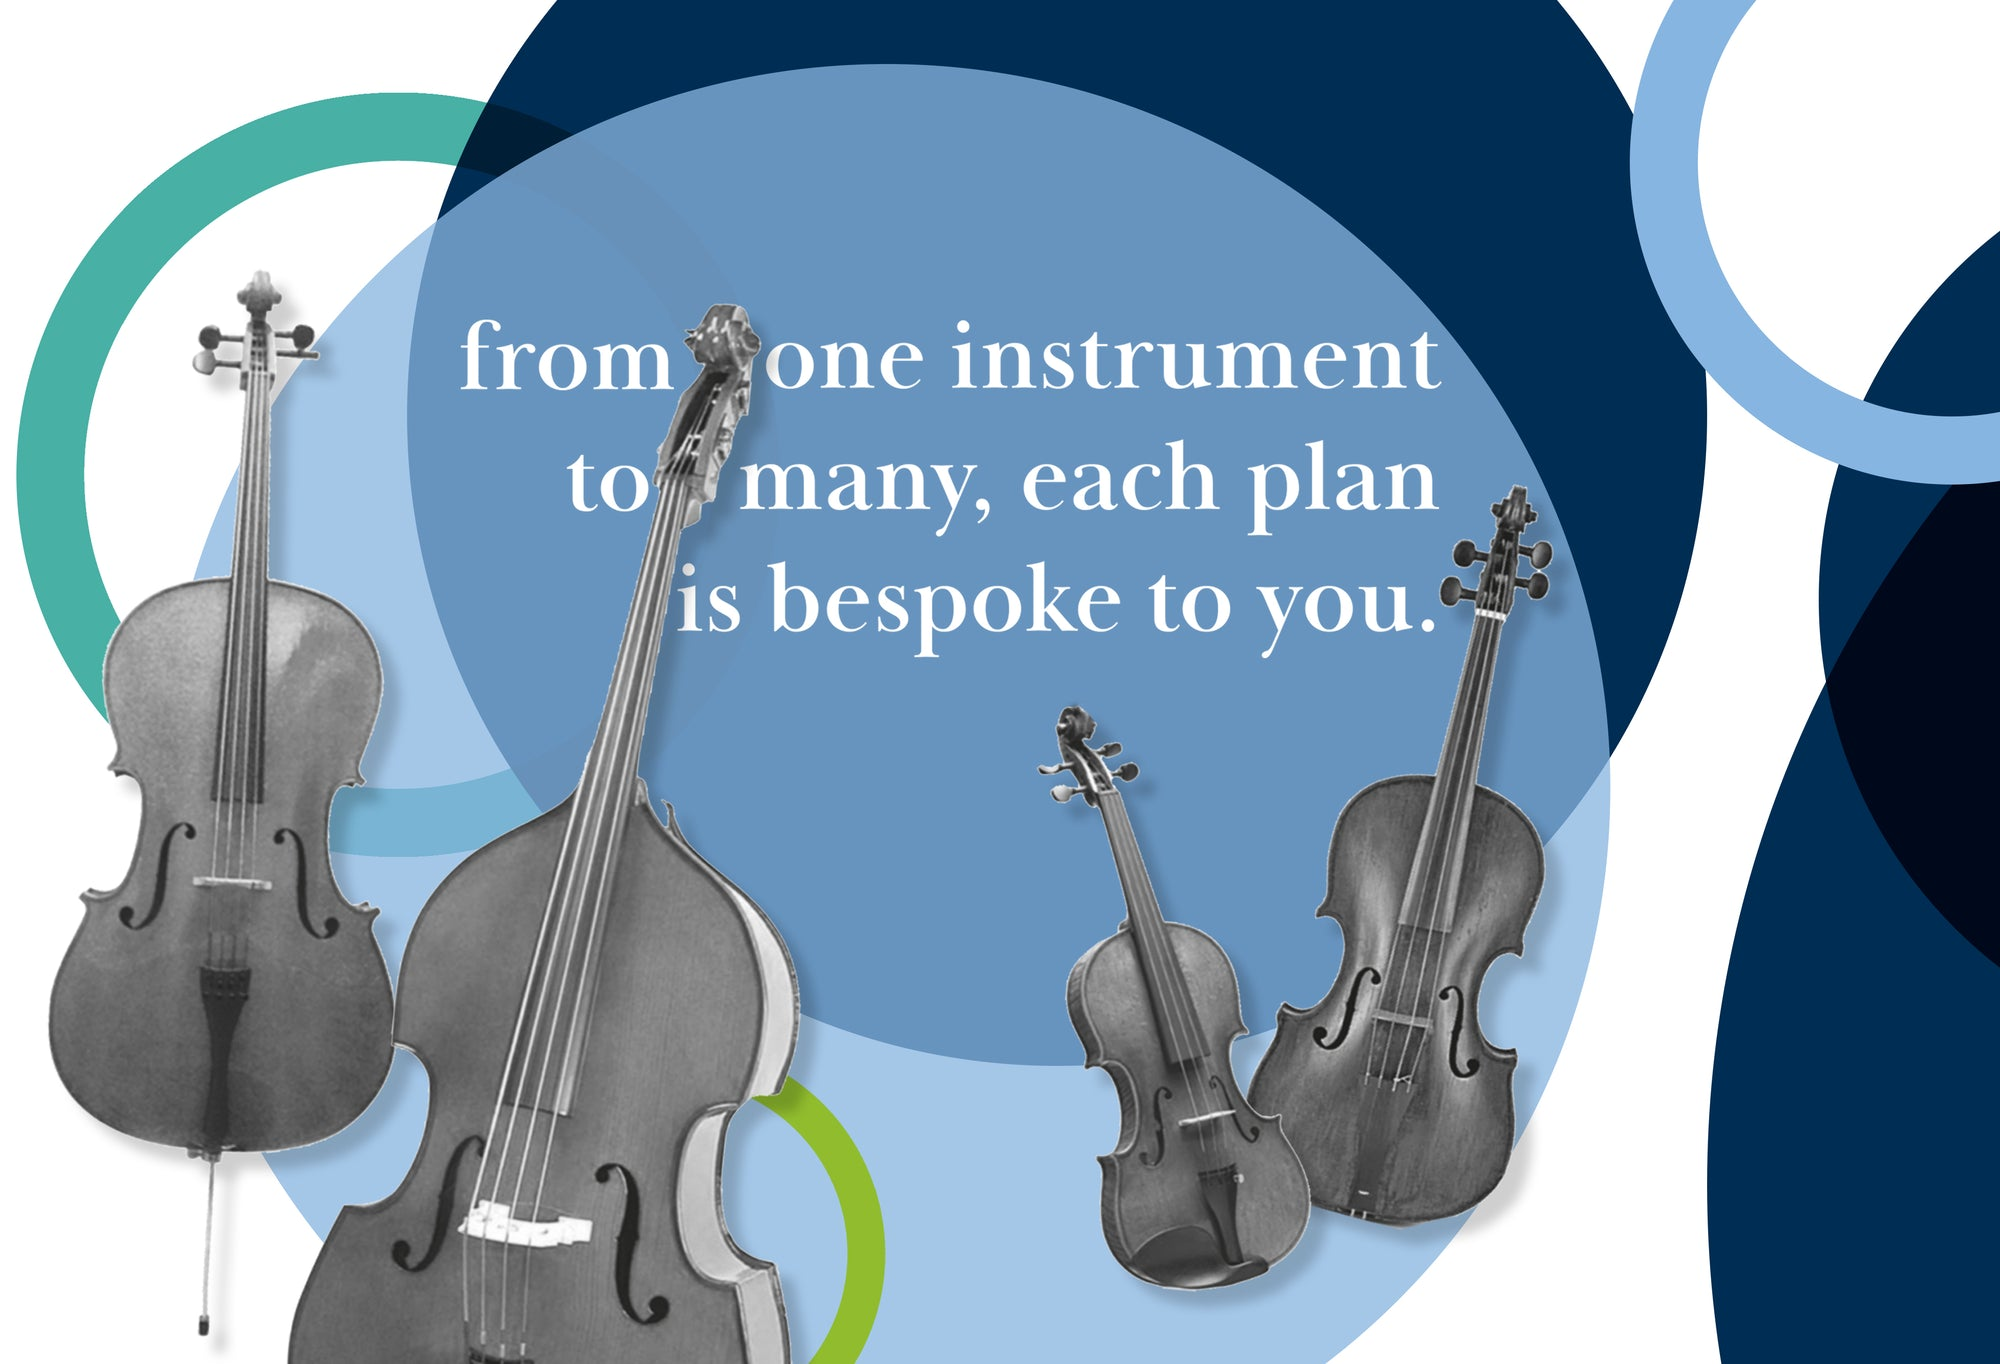 From one instrument to many, each plan is bespoke to you